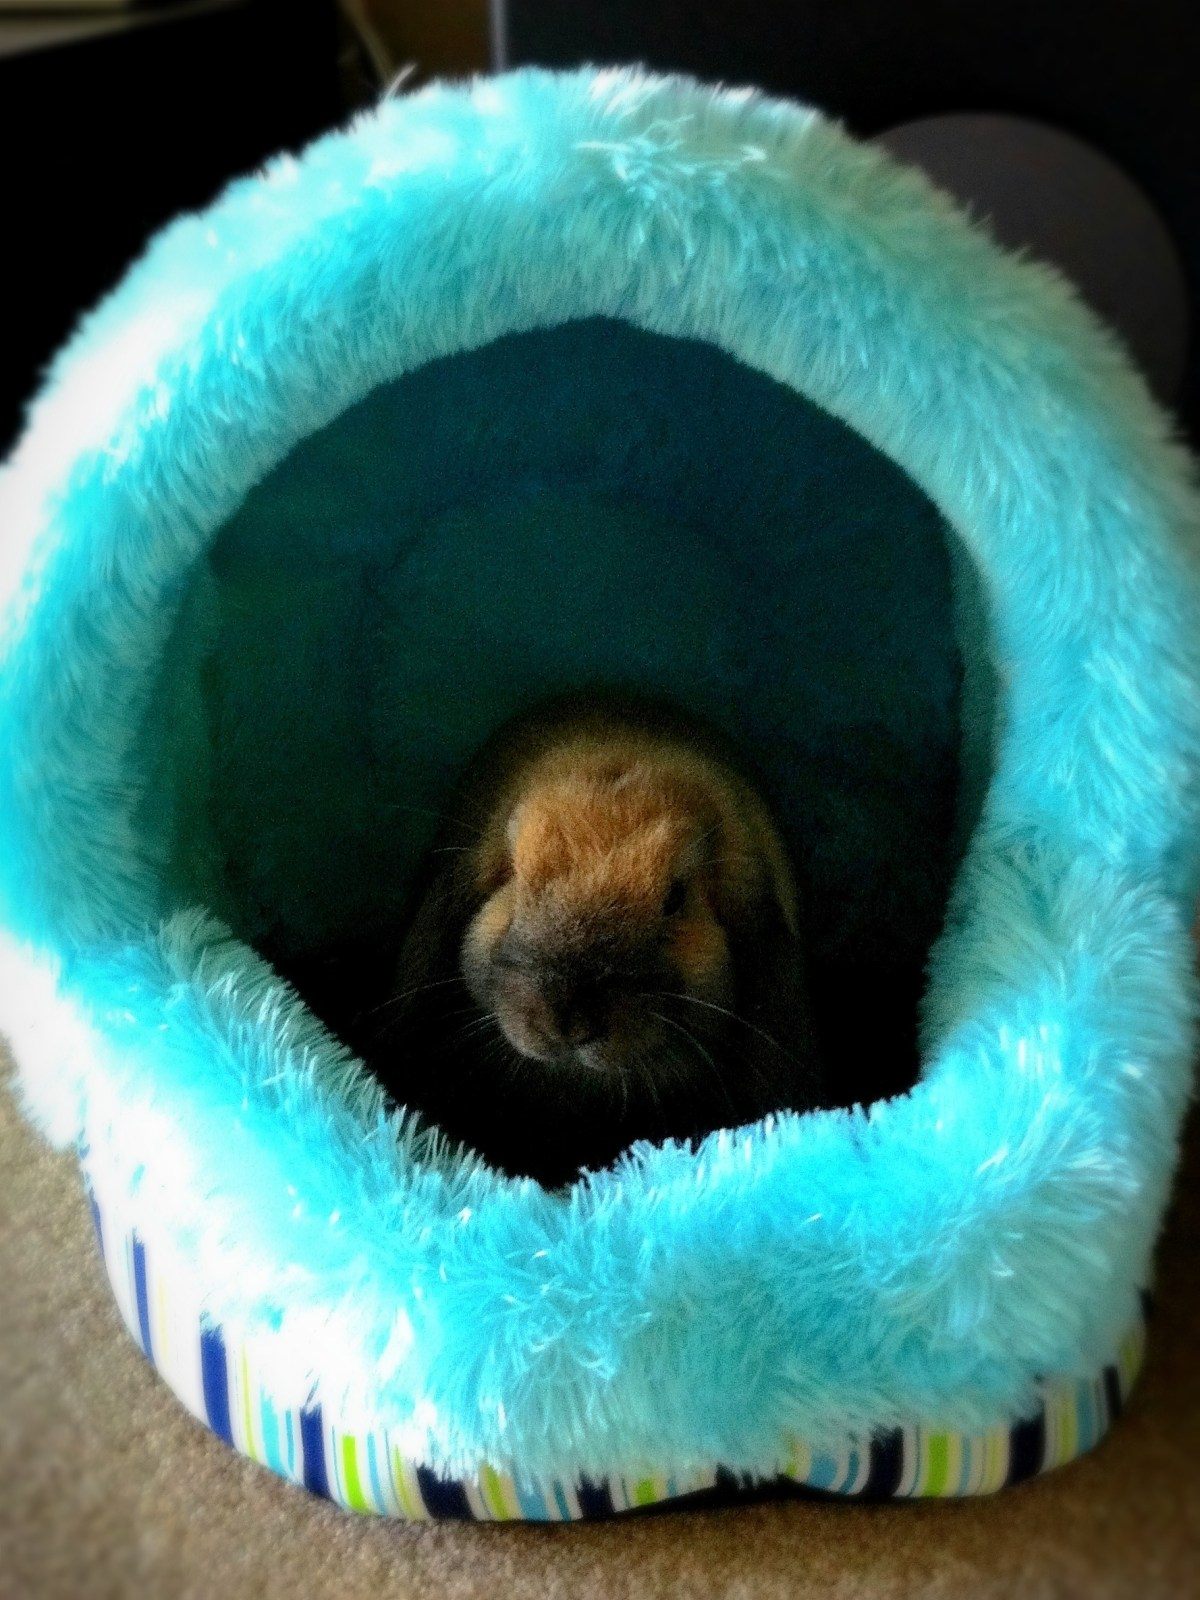 007: Kaylee's igloo